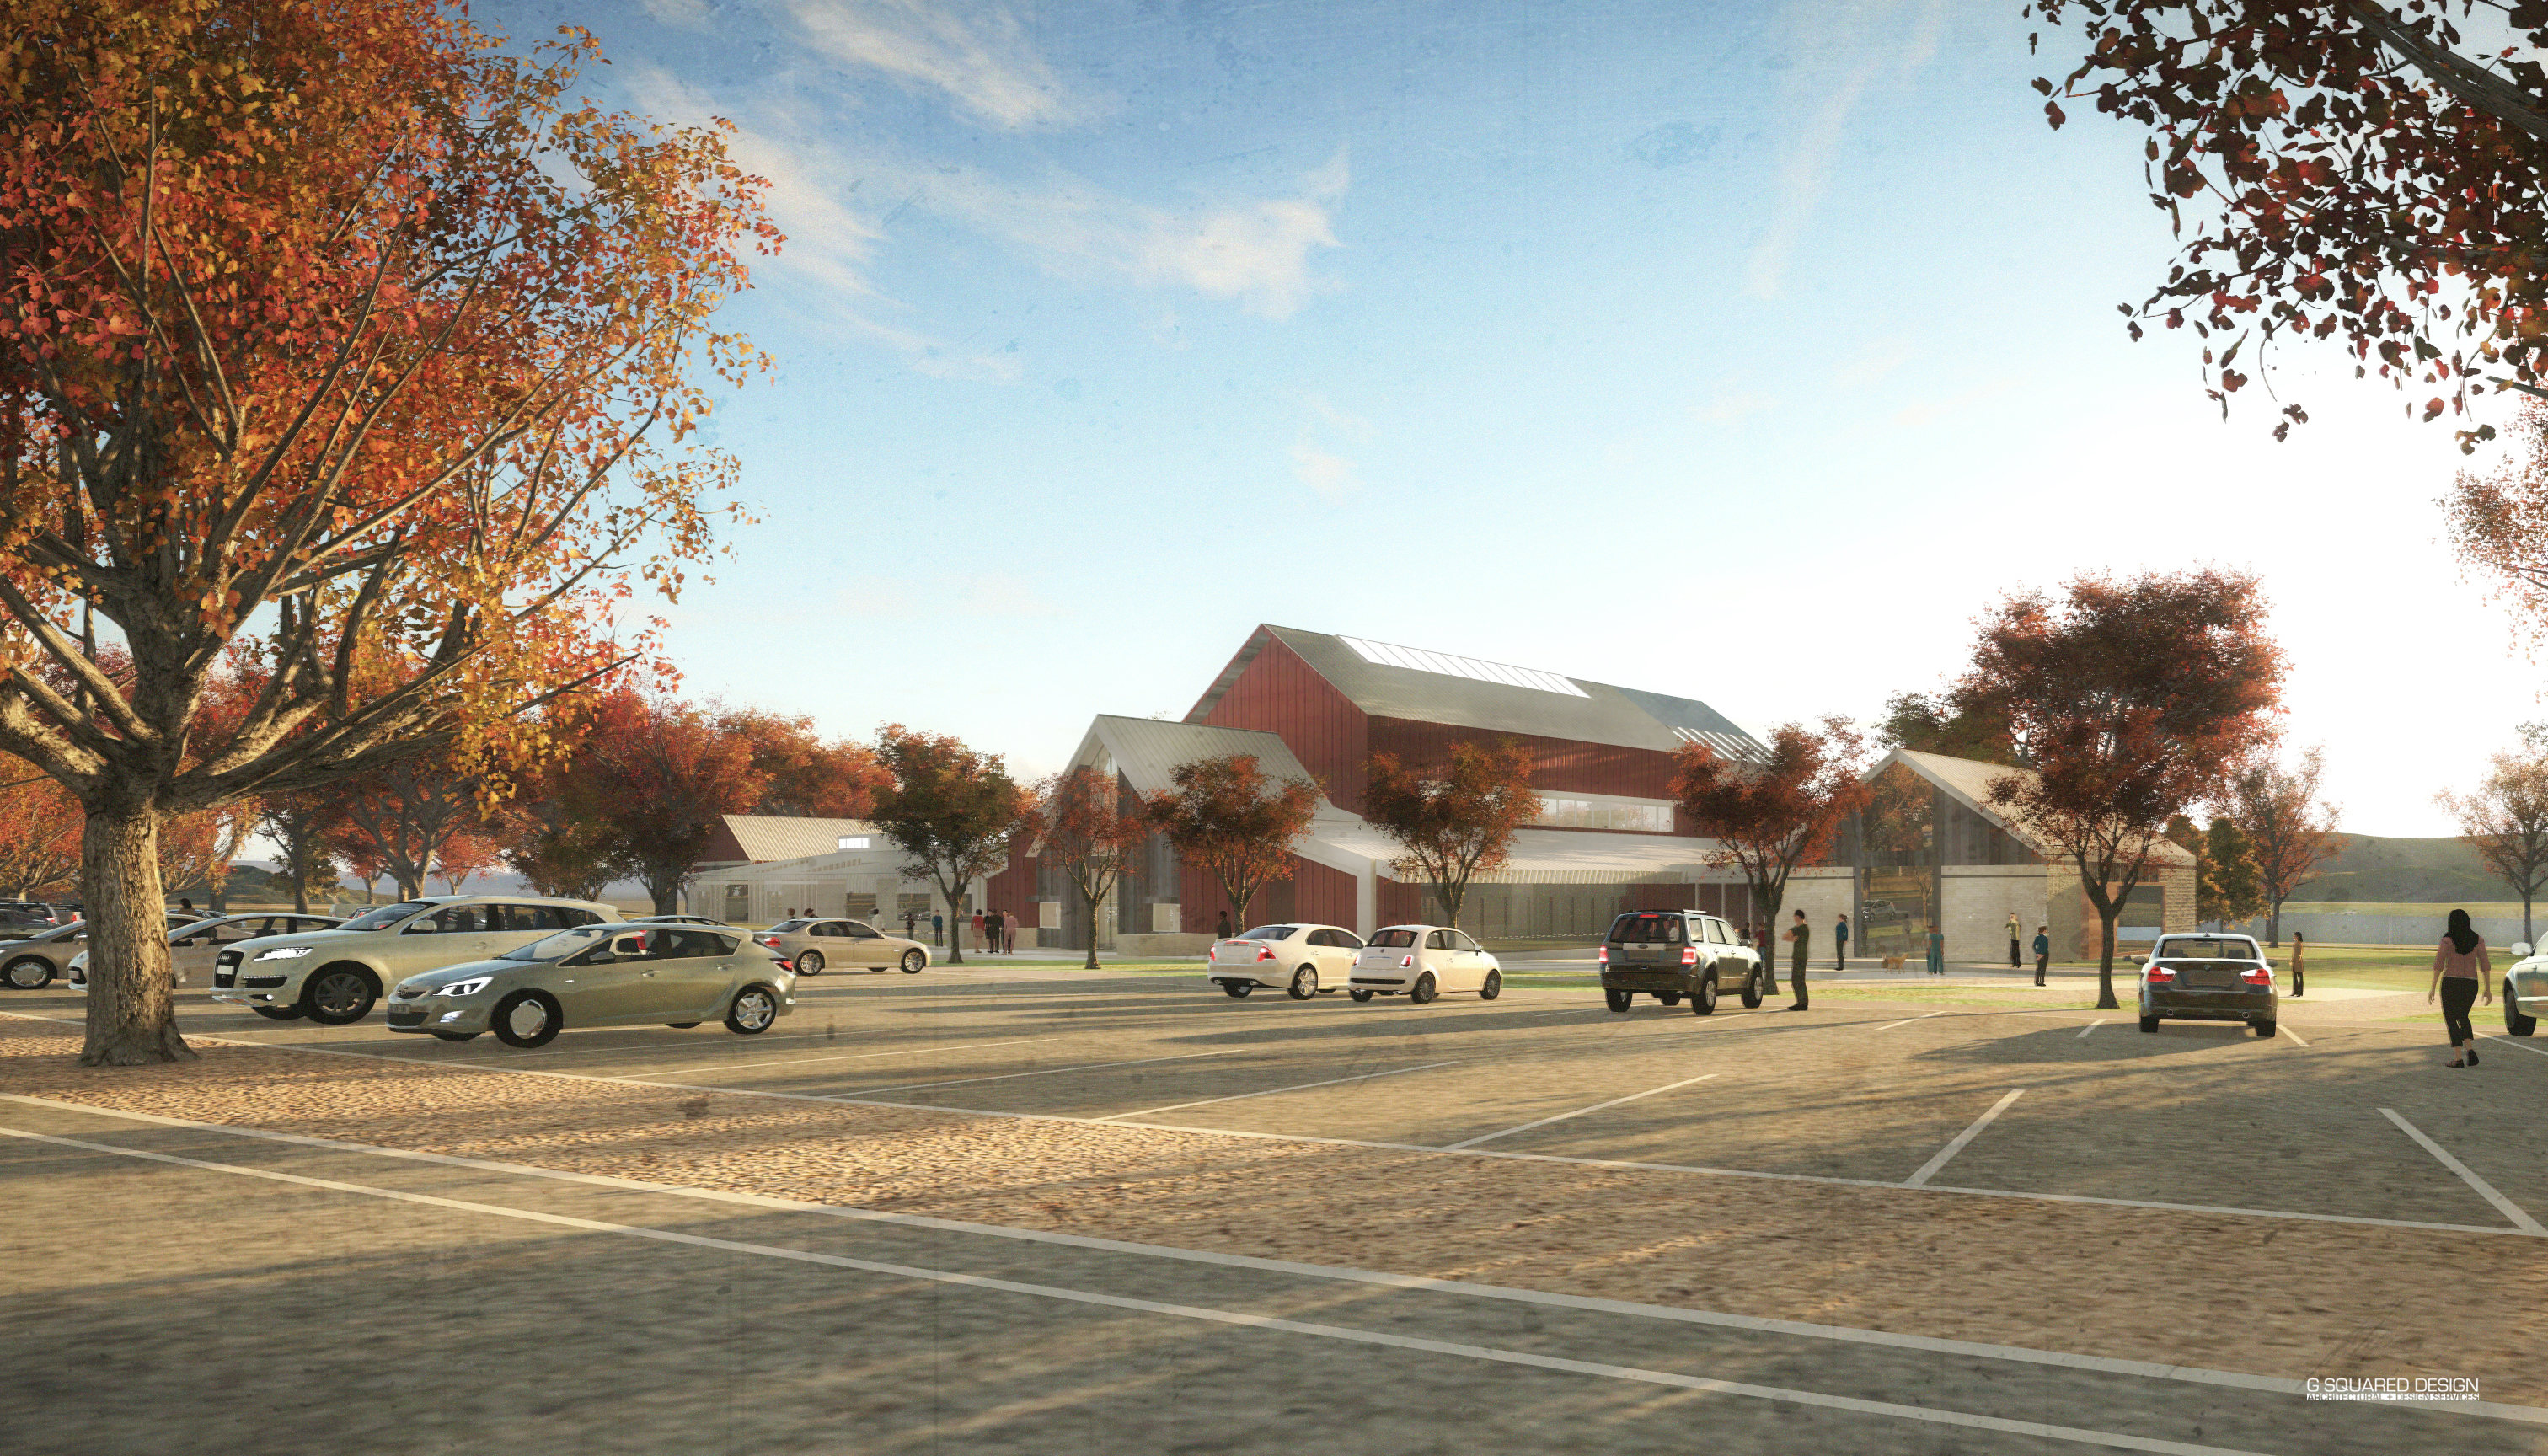 STREET LEVEL VIEW- Rendering